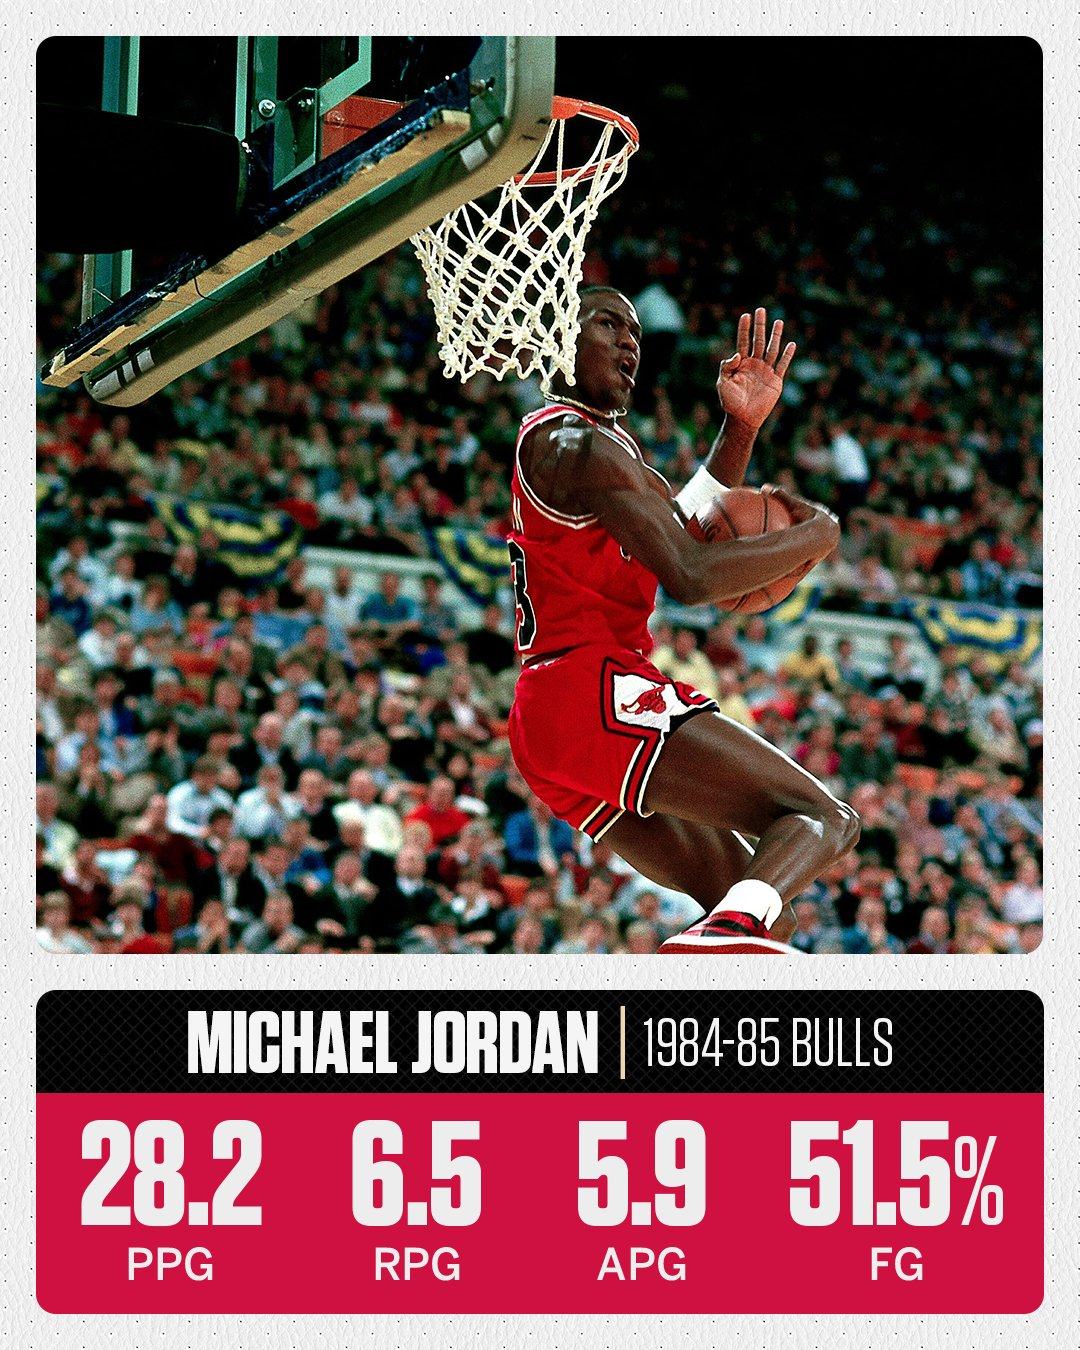 33 years ago today, Michael Jordan won Rookie of the Year with these stats. �� https://t.co/ck9kQJniNR